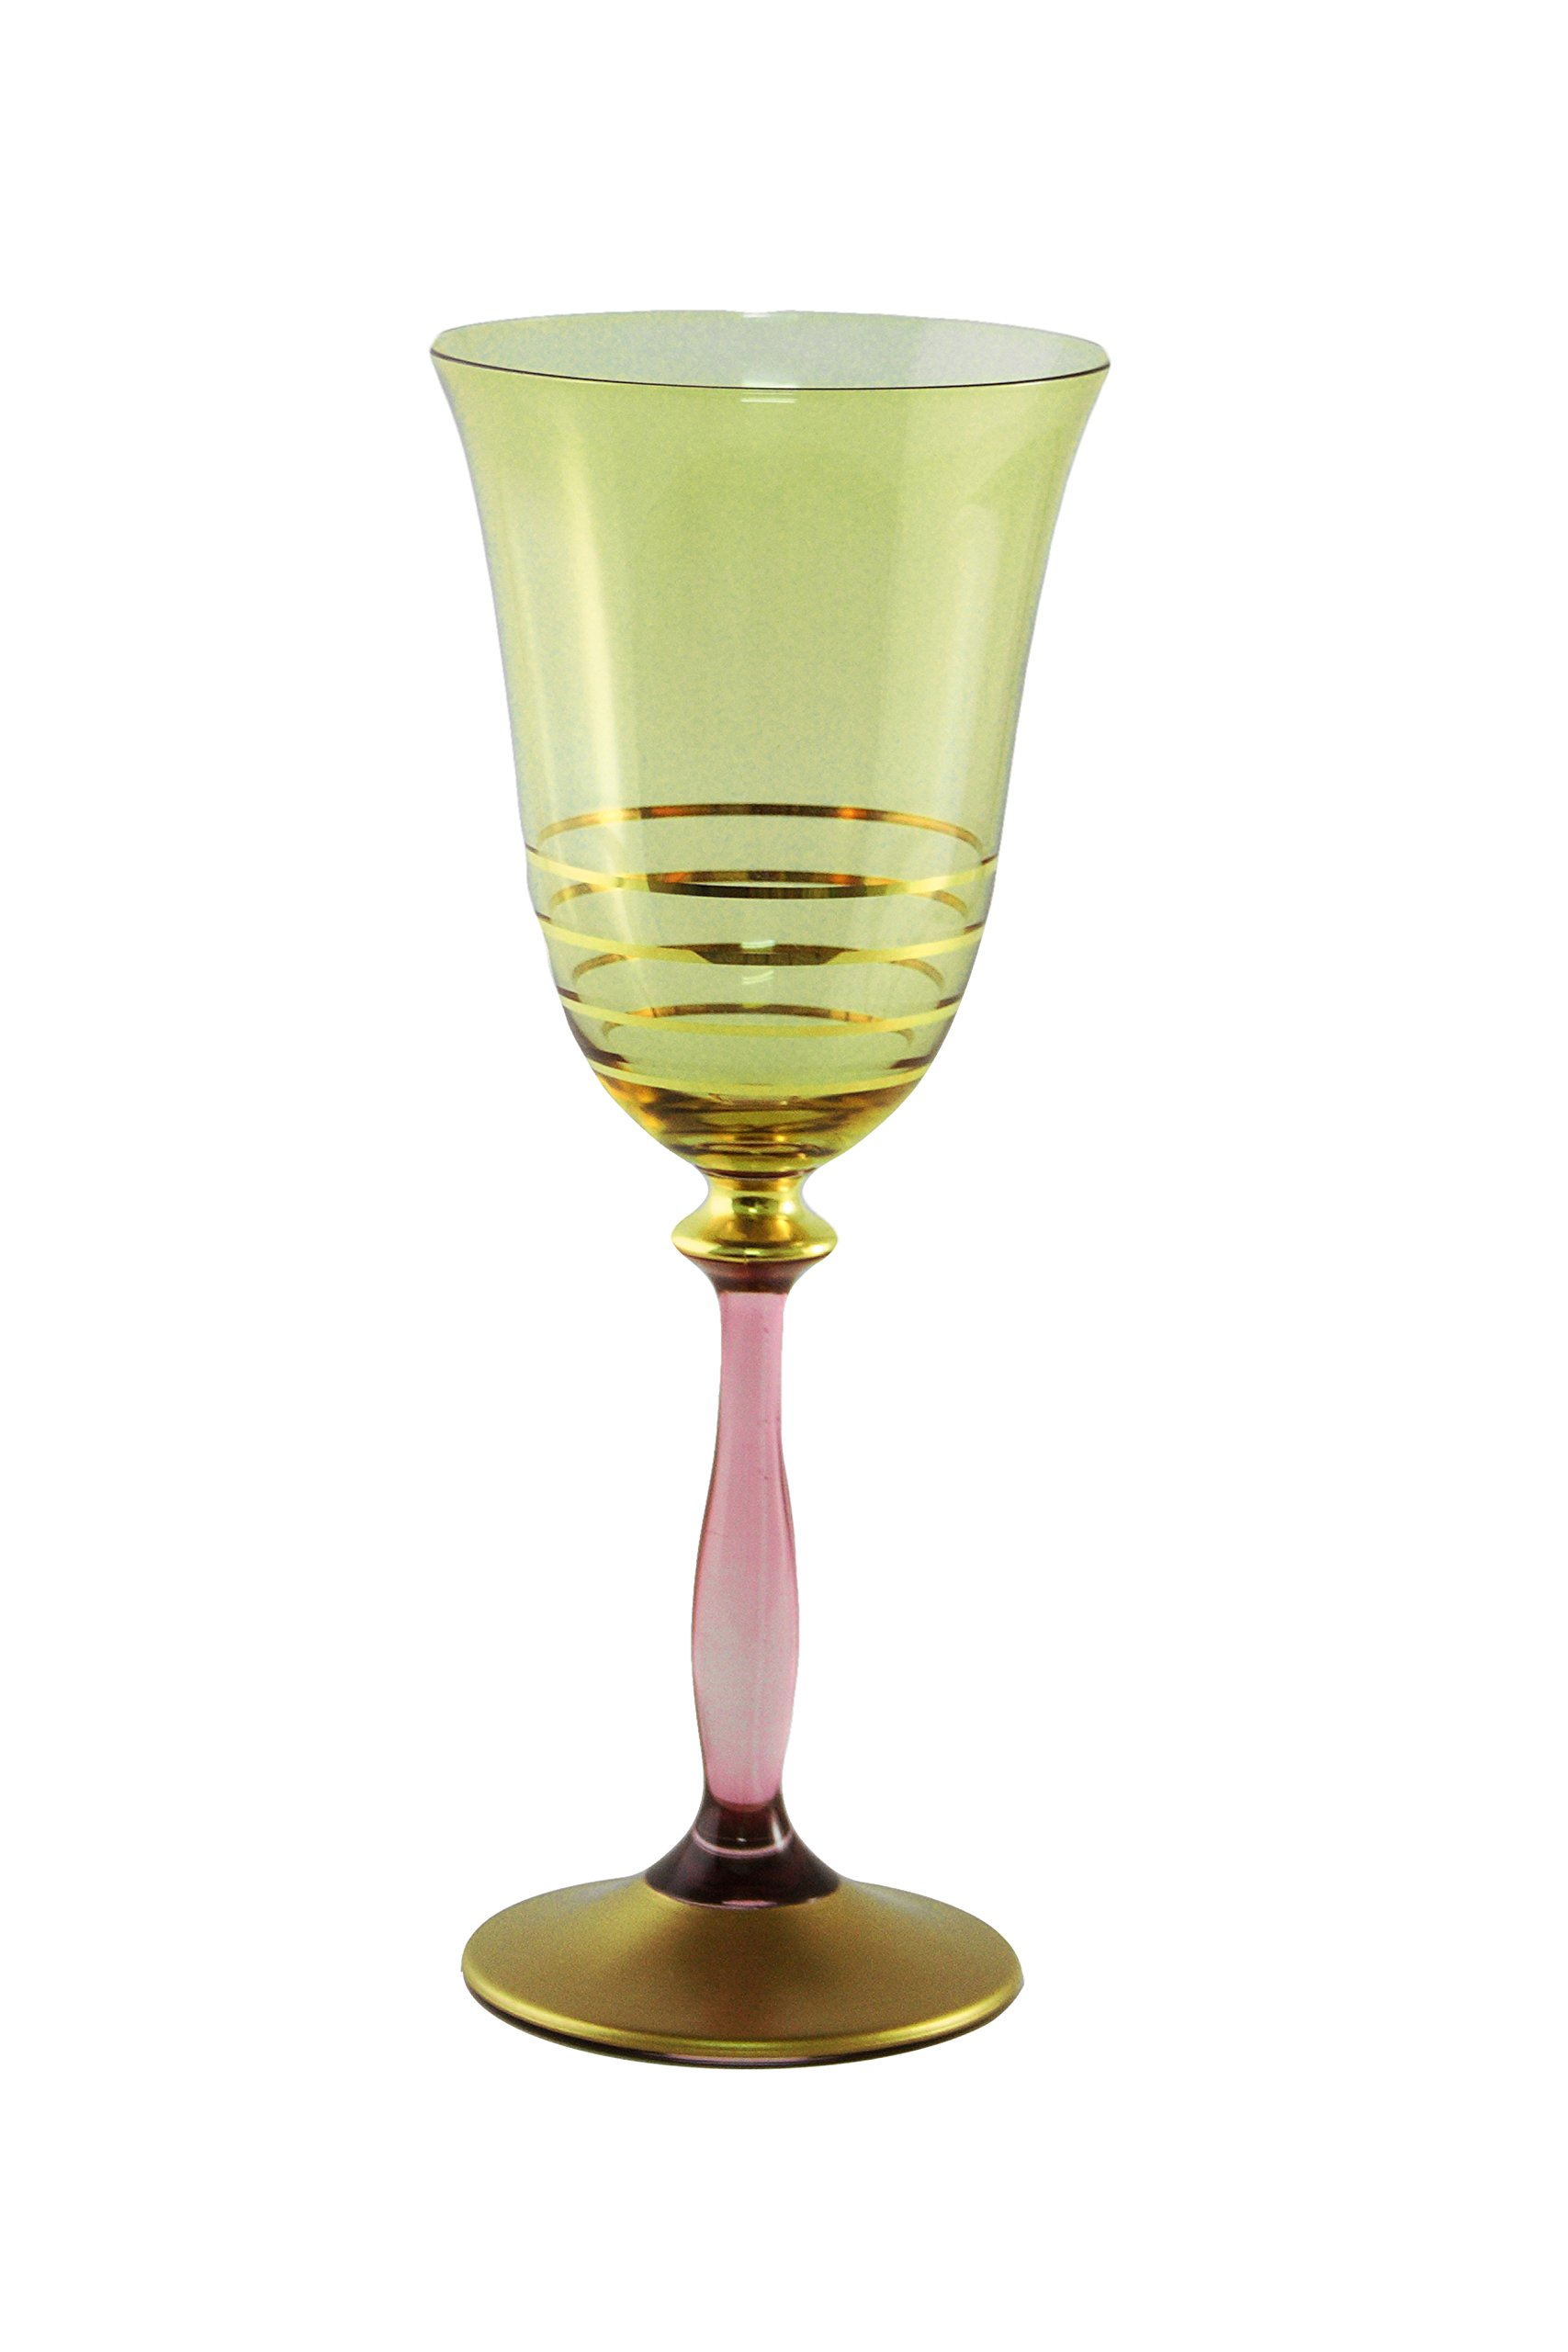 Classic Touch CWG914/GA Amber Water Glasses with Green Stem Designed with 14 Karat Gold, 8-Inch, Set of 6